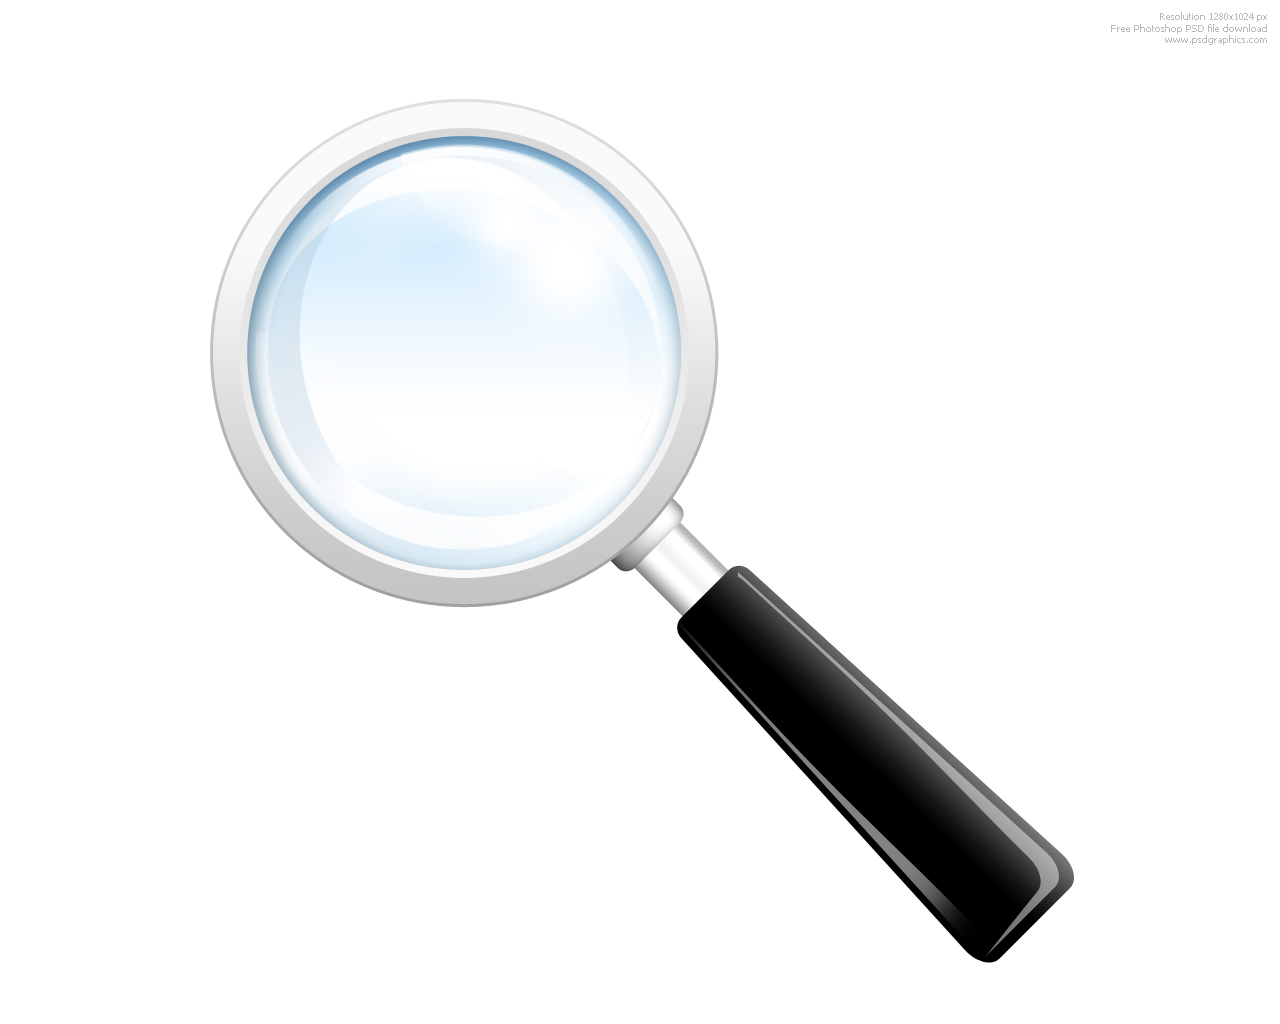 hight resolution of search icon psd magnifying glass psdgraphics